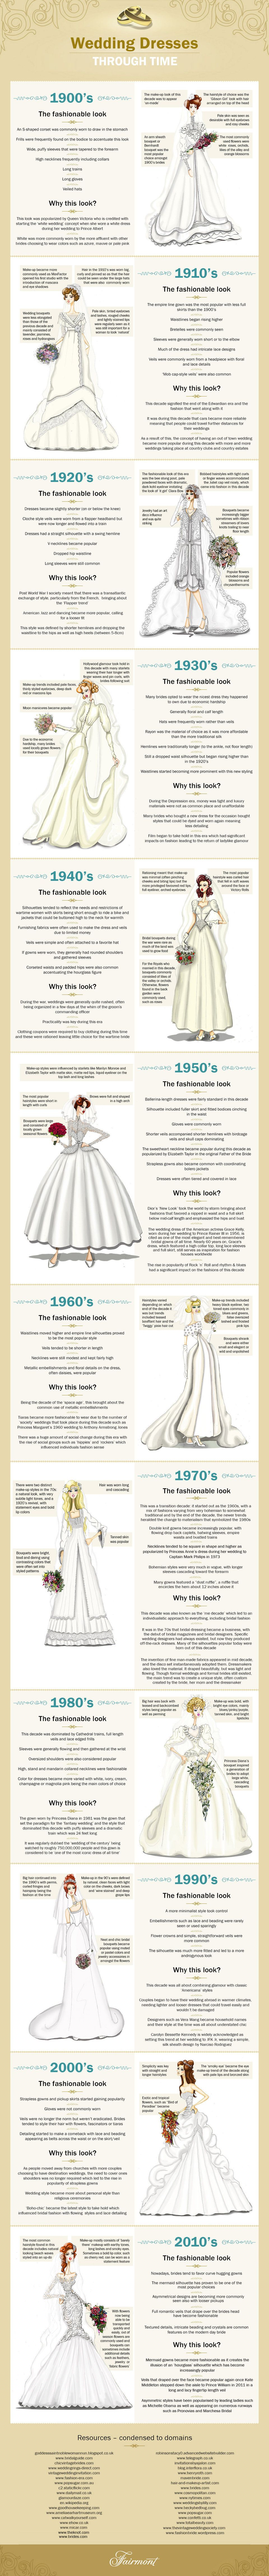 This Is How Wedding Dress Trends Have Changed Over The Last Century ...